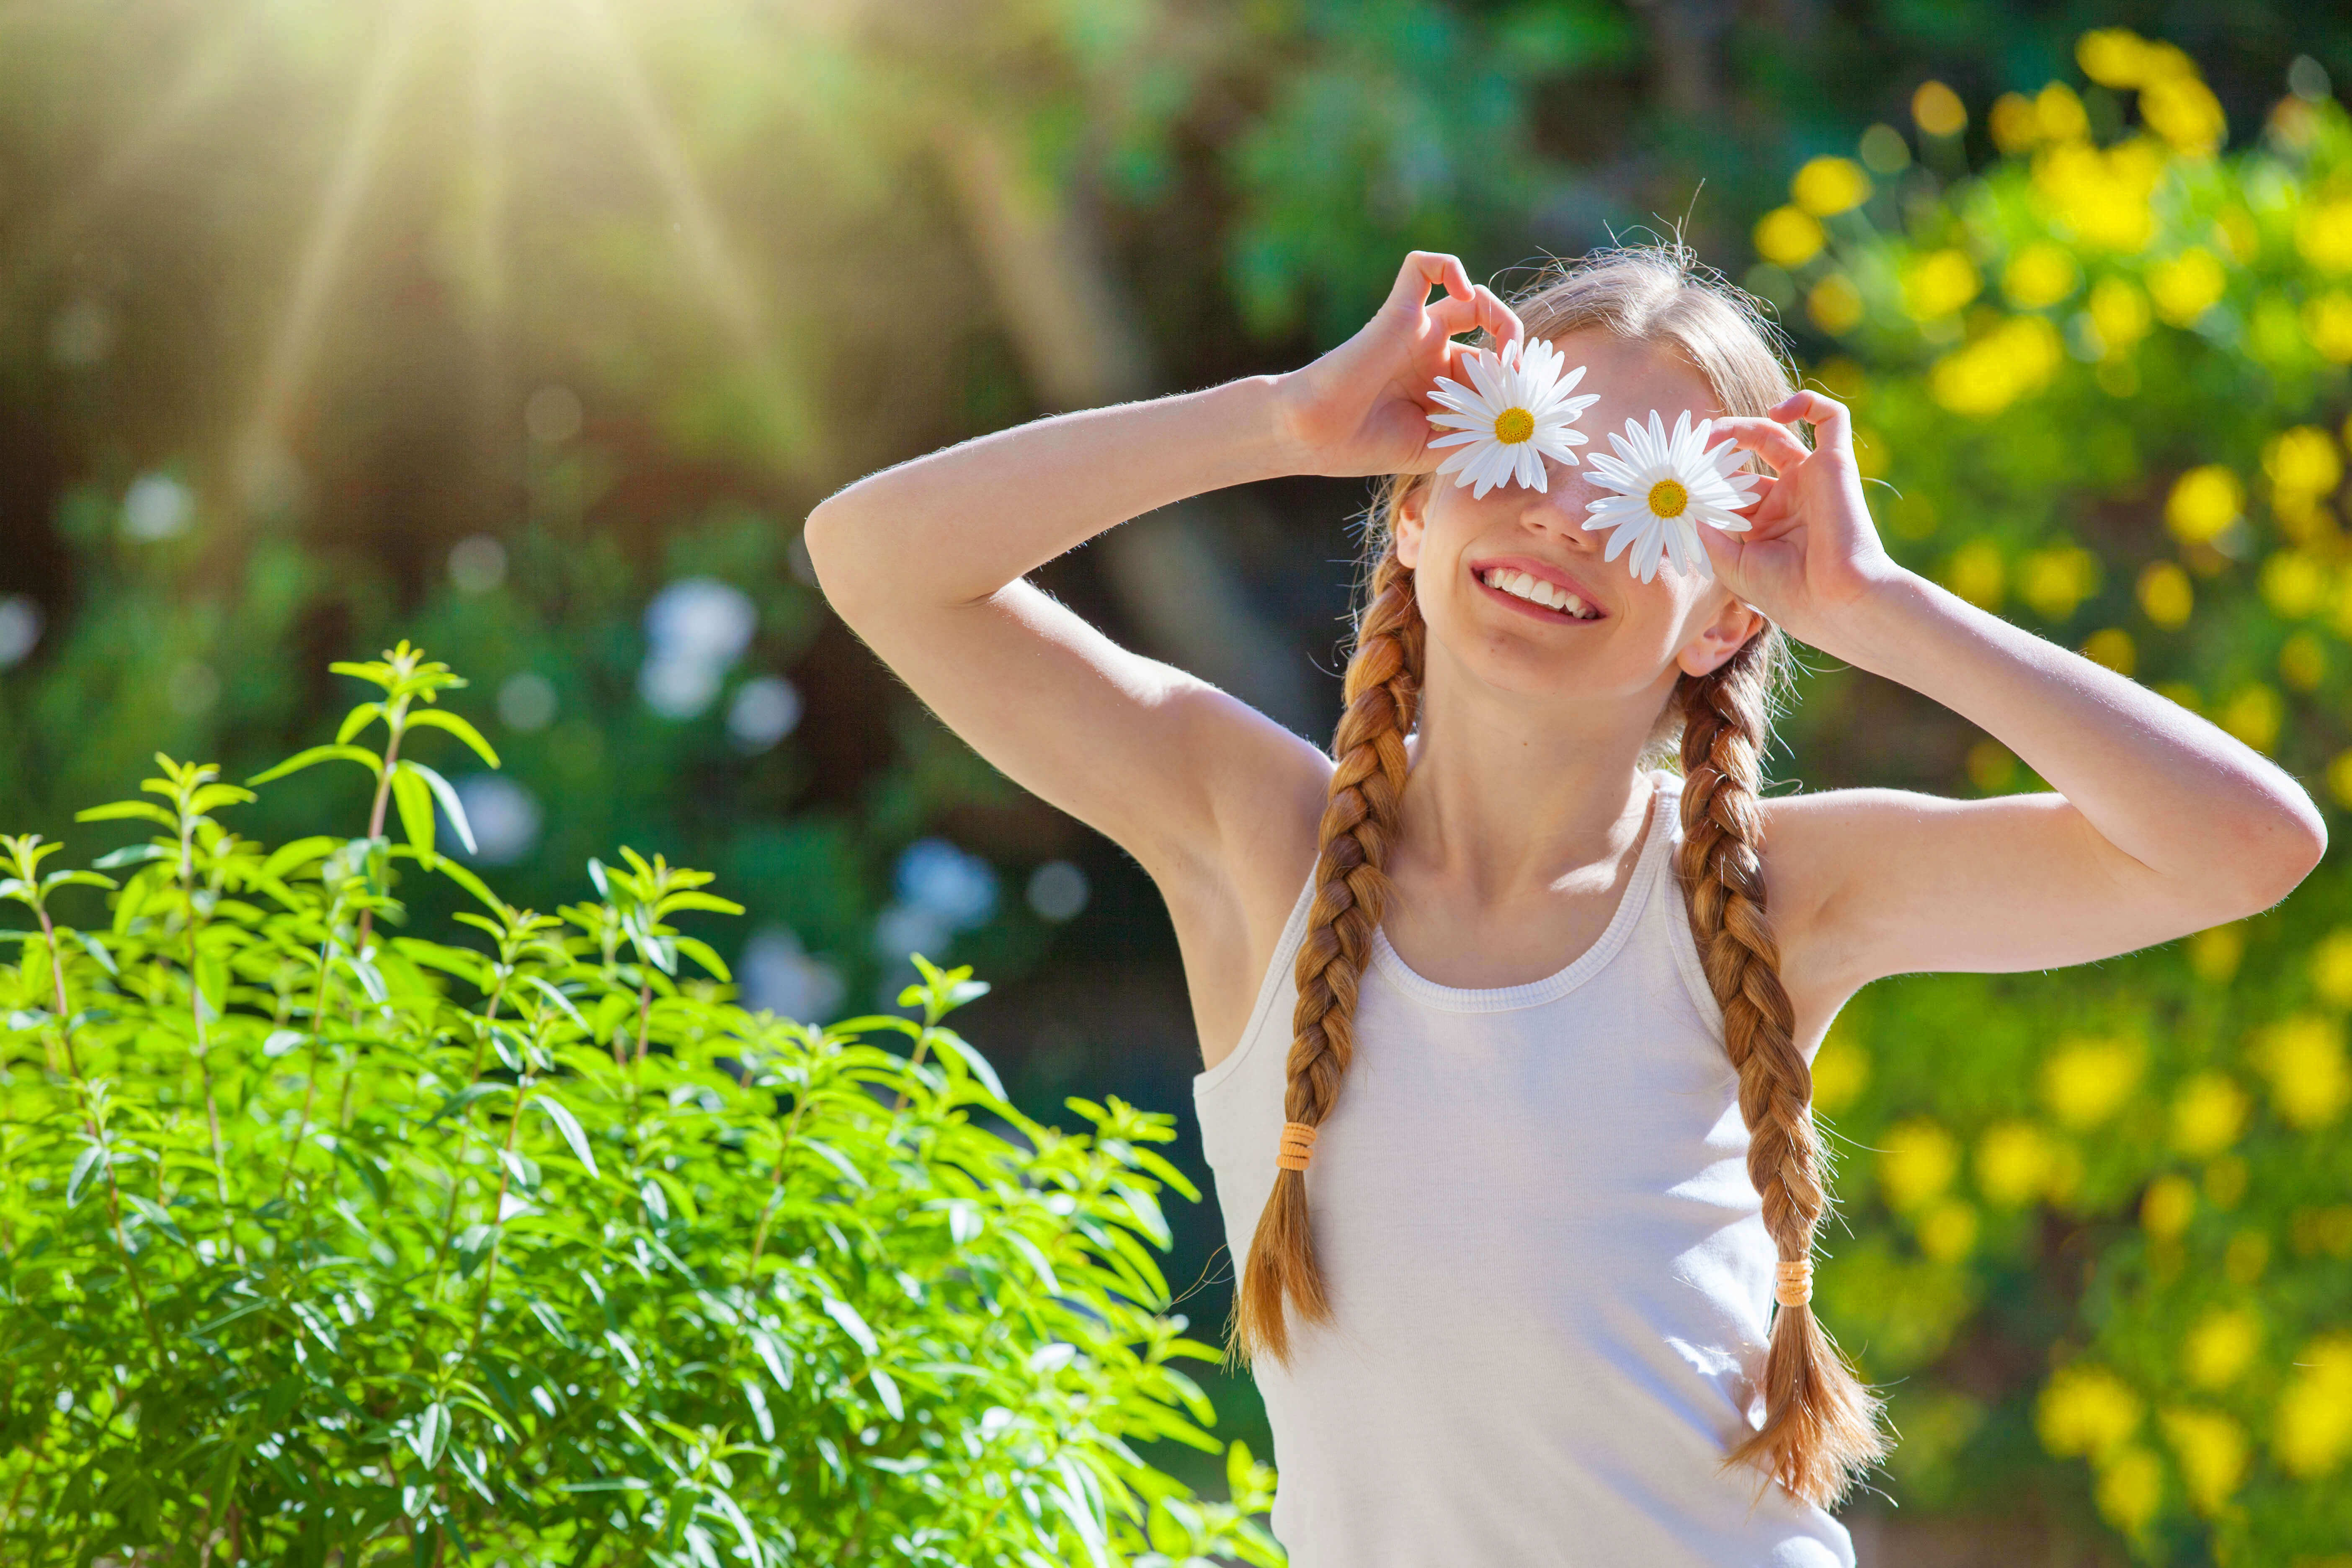 How To Protect Your Eyes During Summer